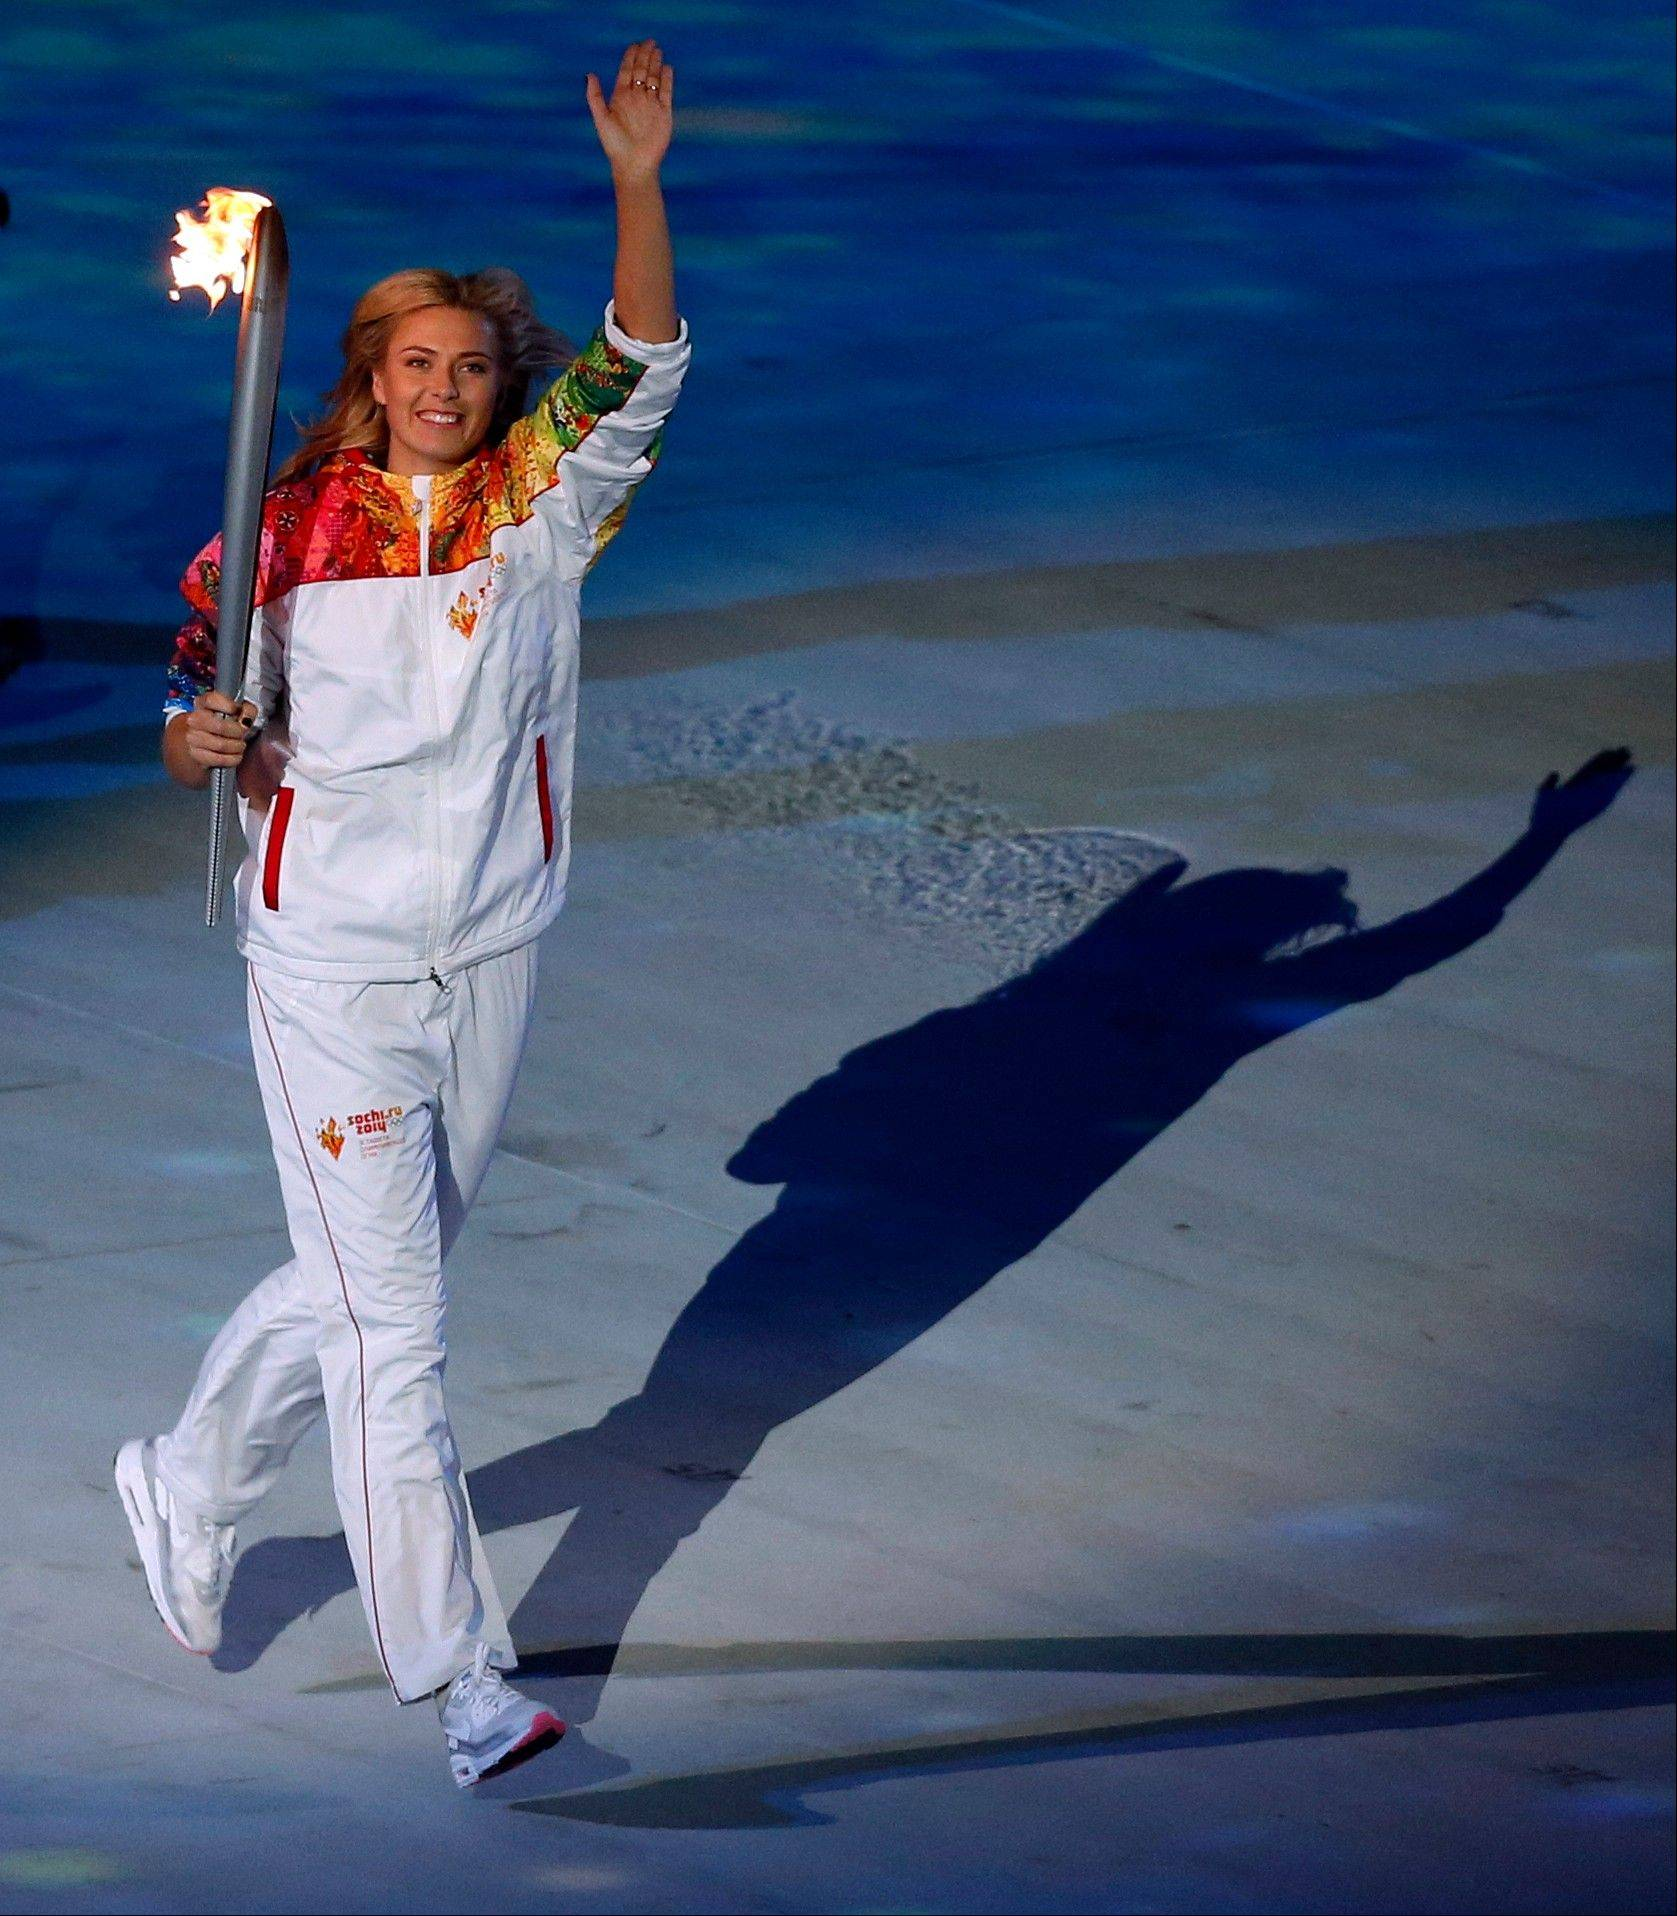 Maria Sharapova carries the torch during the opening ceremony.